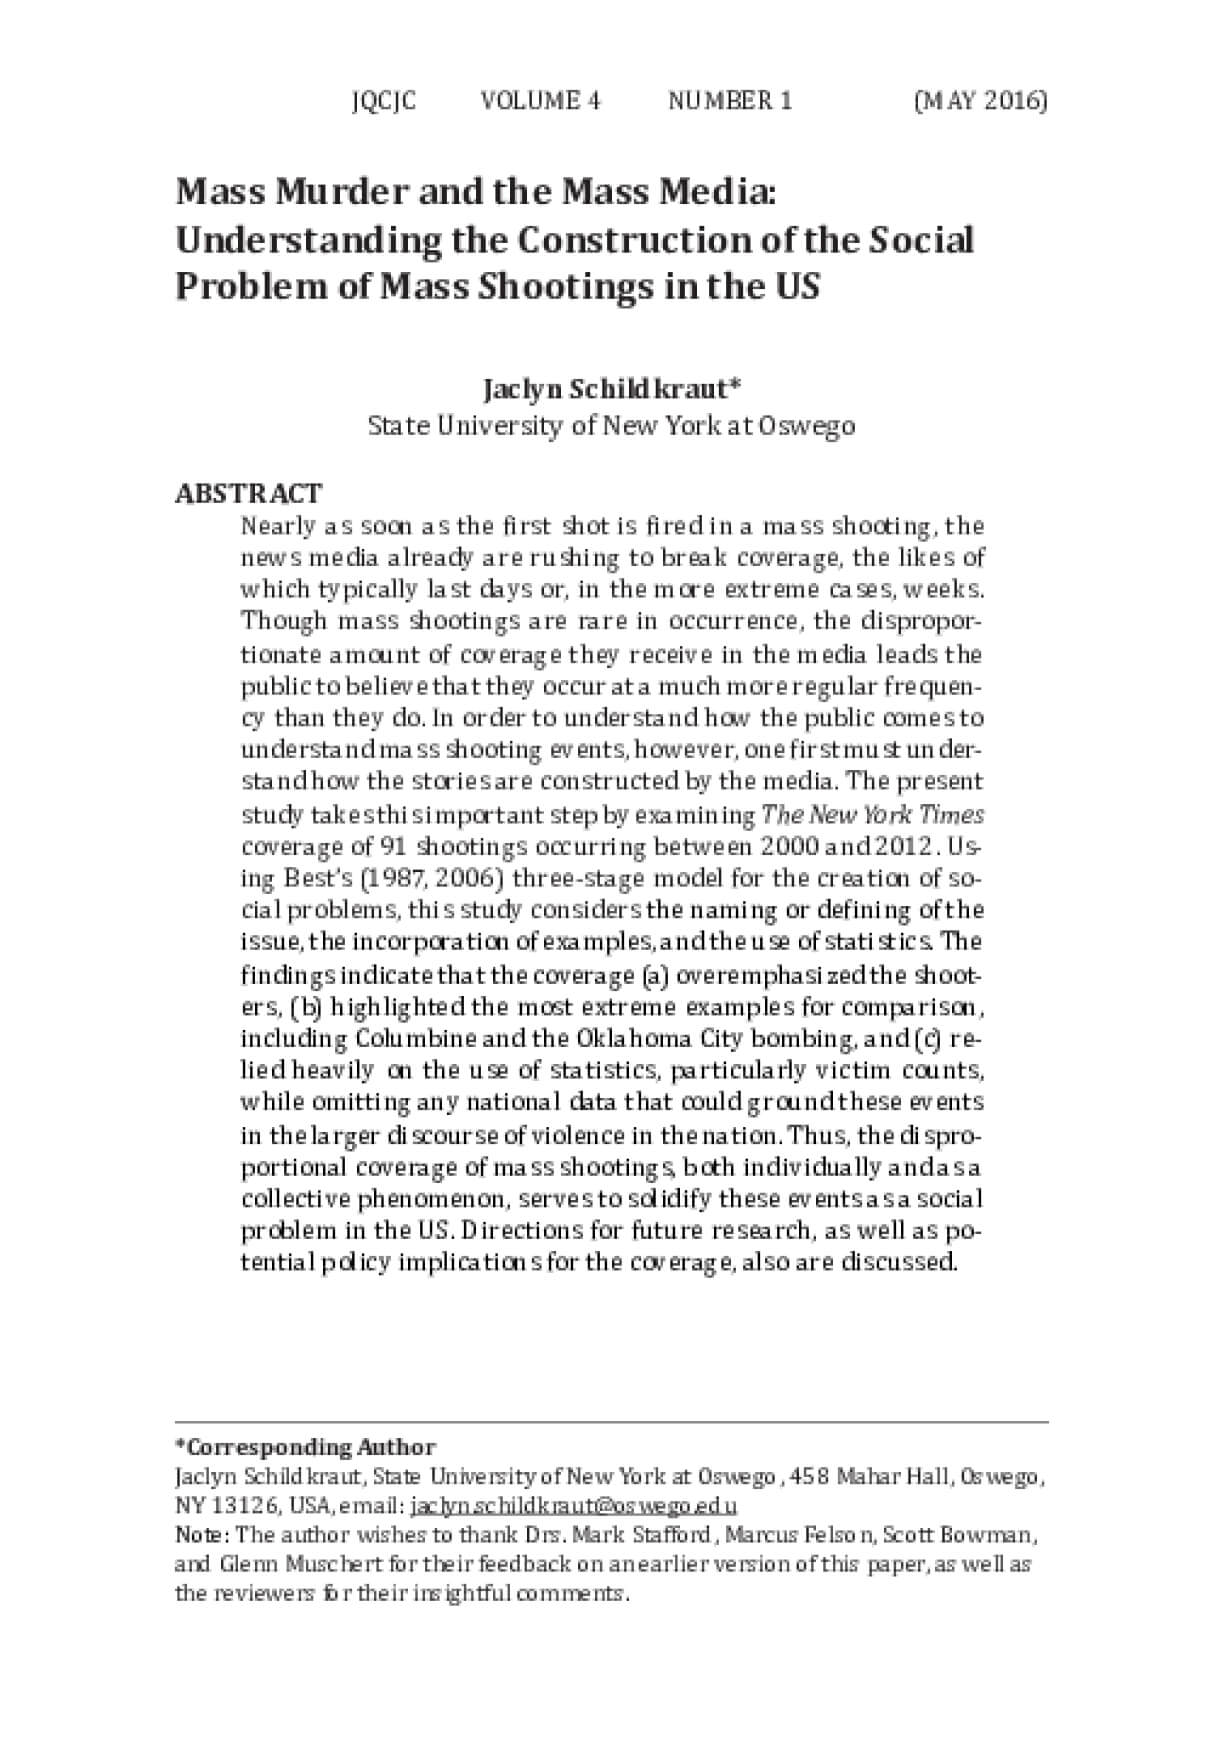 Mass Murder and the Mass Media: Understanding the Construction of the Social Problem of Mass Shootings in the US